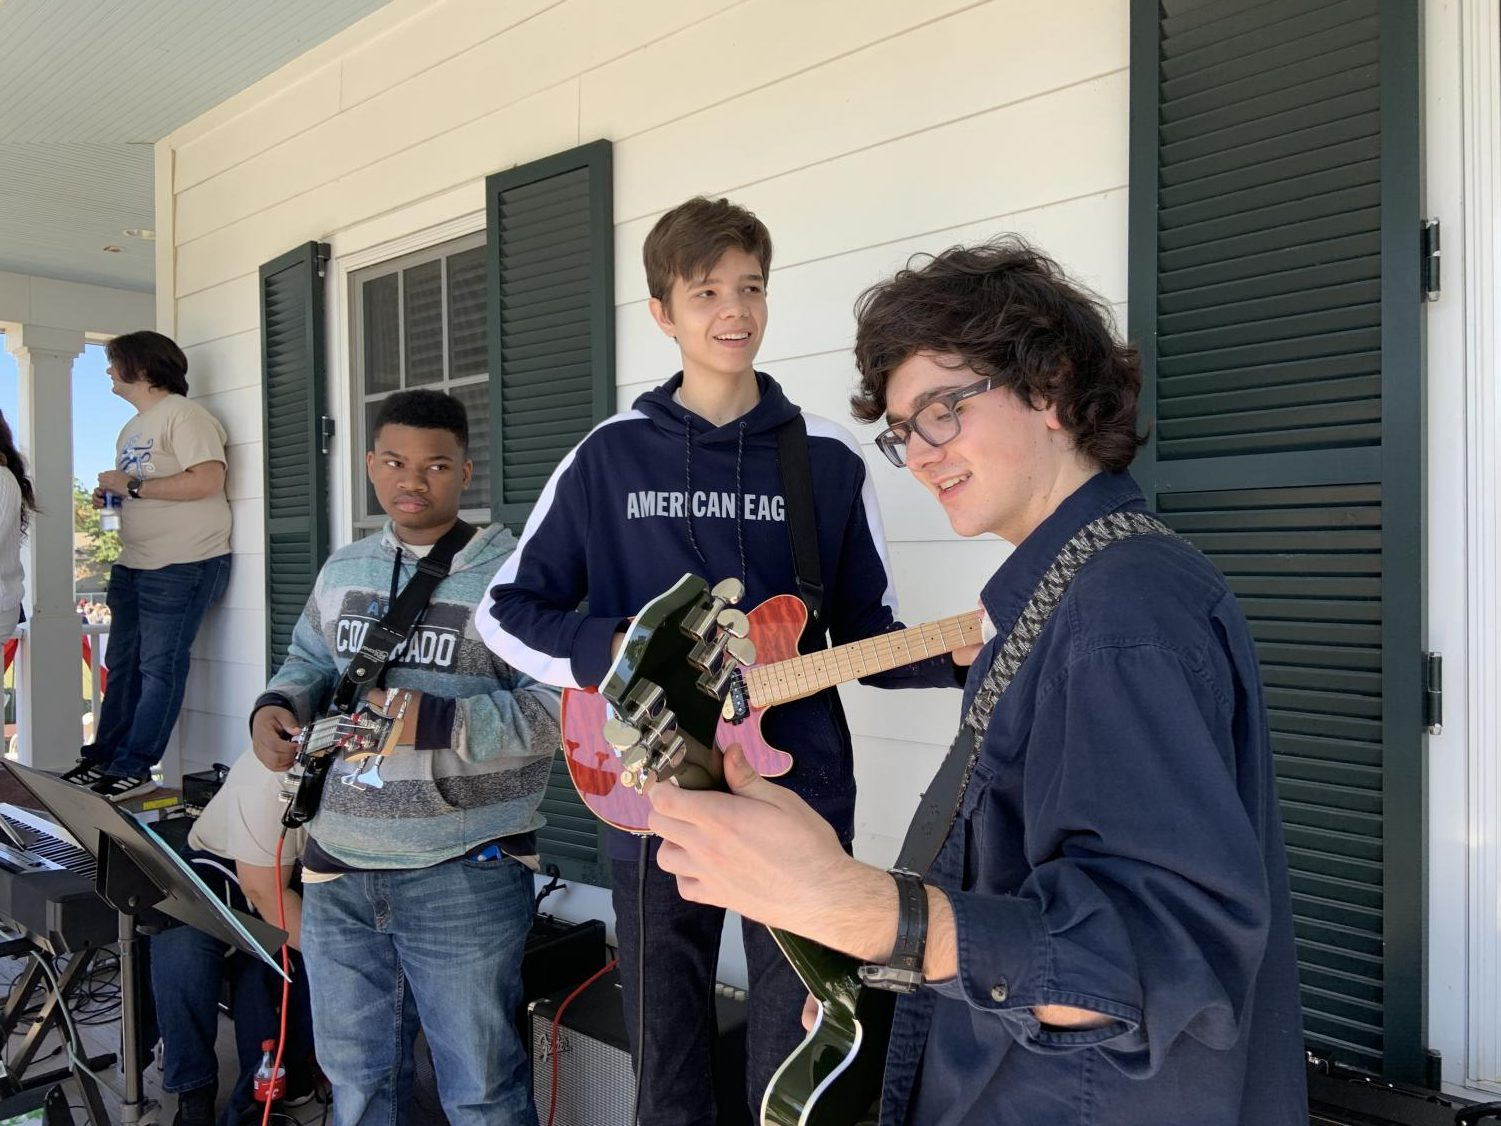 Juniors Zach Medlin (guitar), Henry Sanders (guitar), and Brayden Bailey (bass) make up some of the